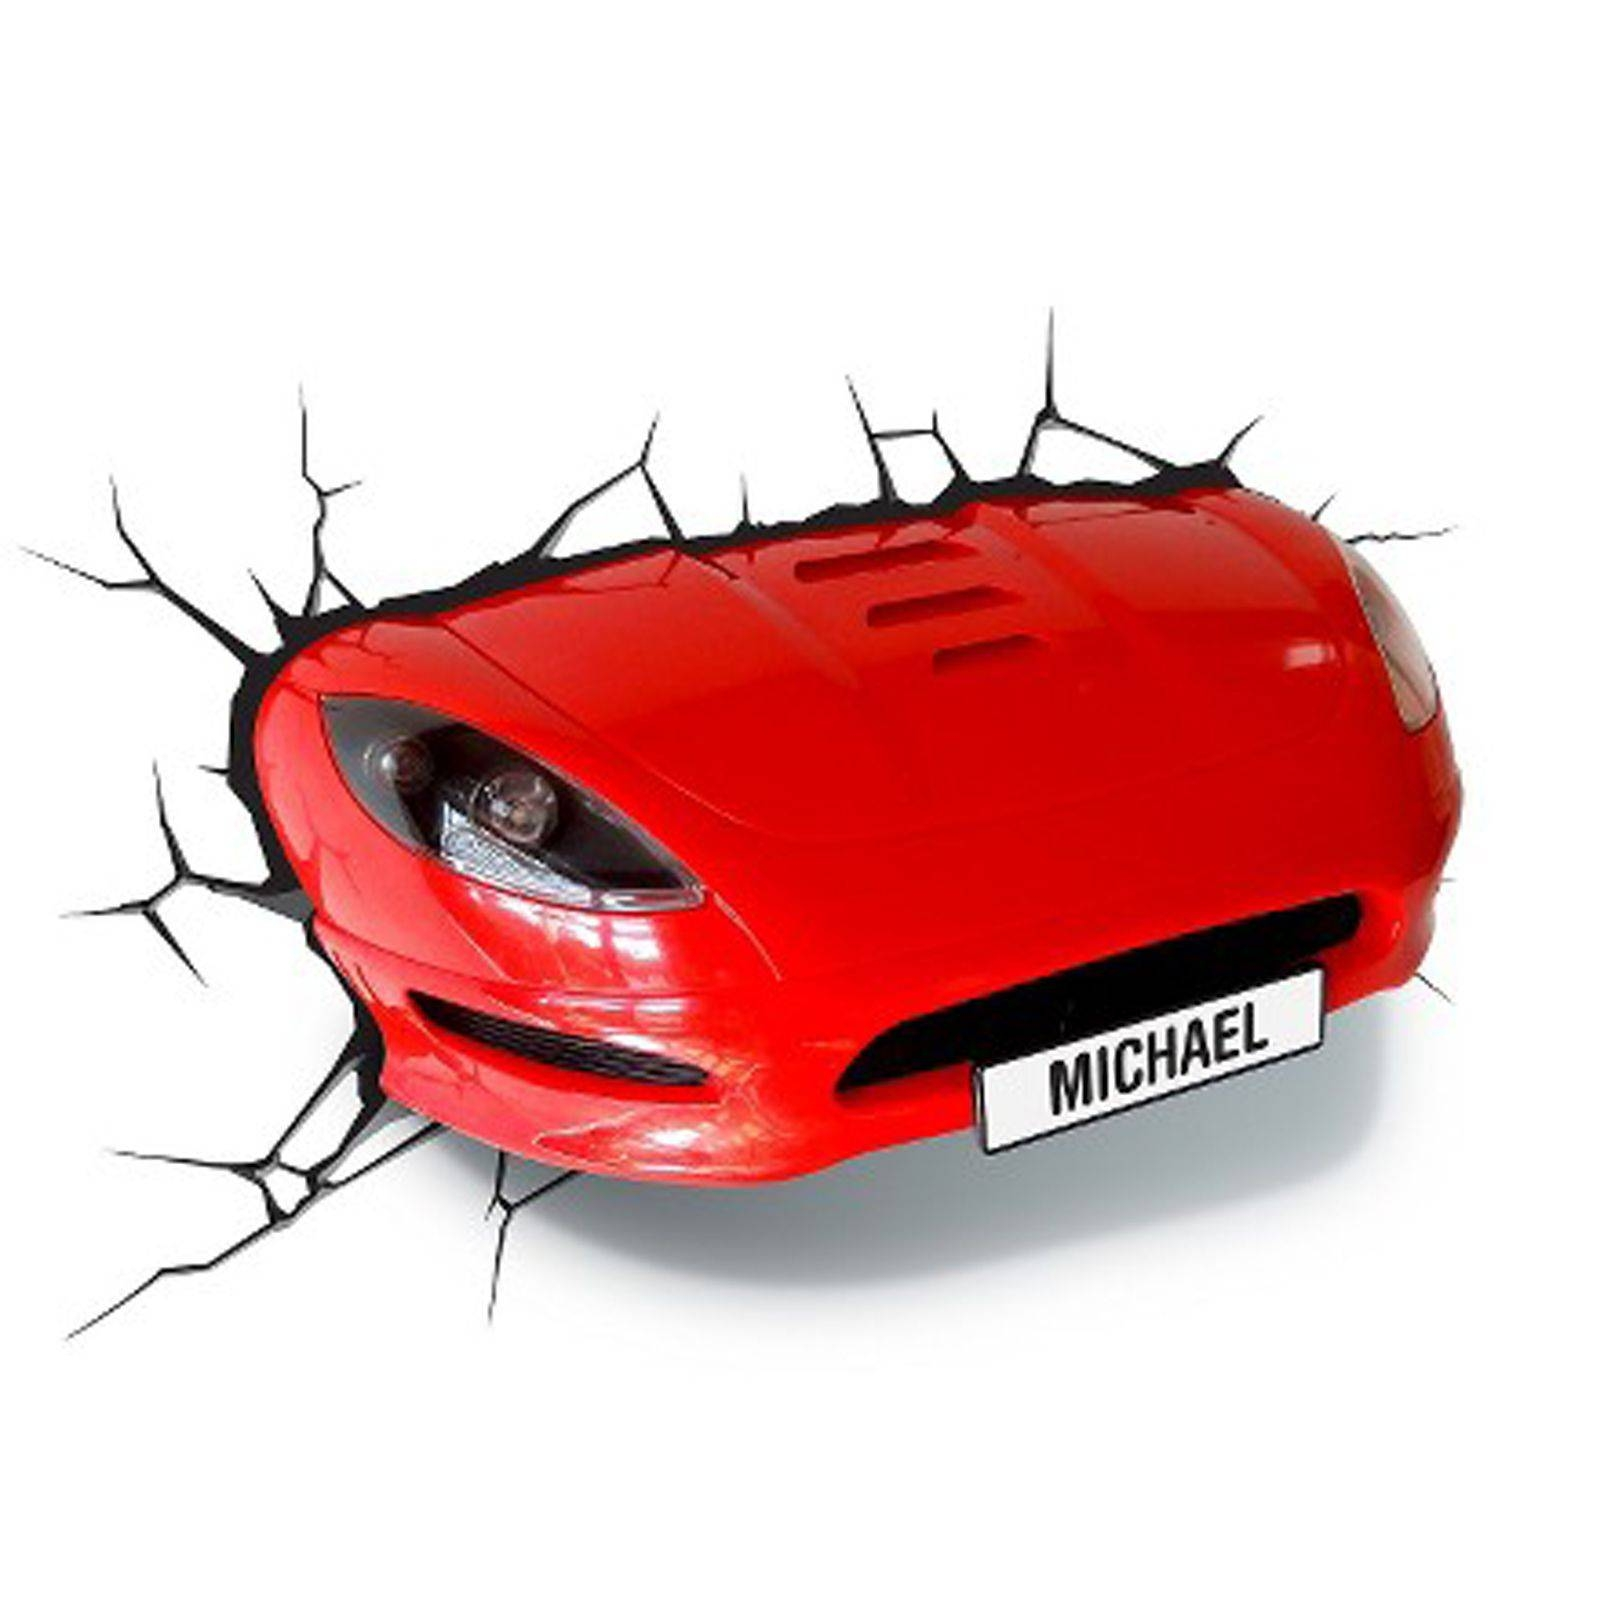 Red Sports Car 3D Effect Wall Light Lamp New Bedroom Decor | Ebay For Best And Newest 3D Effect Wall Art (View 18 of 20)